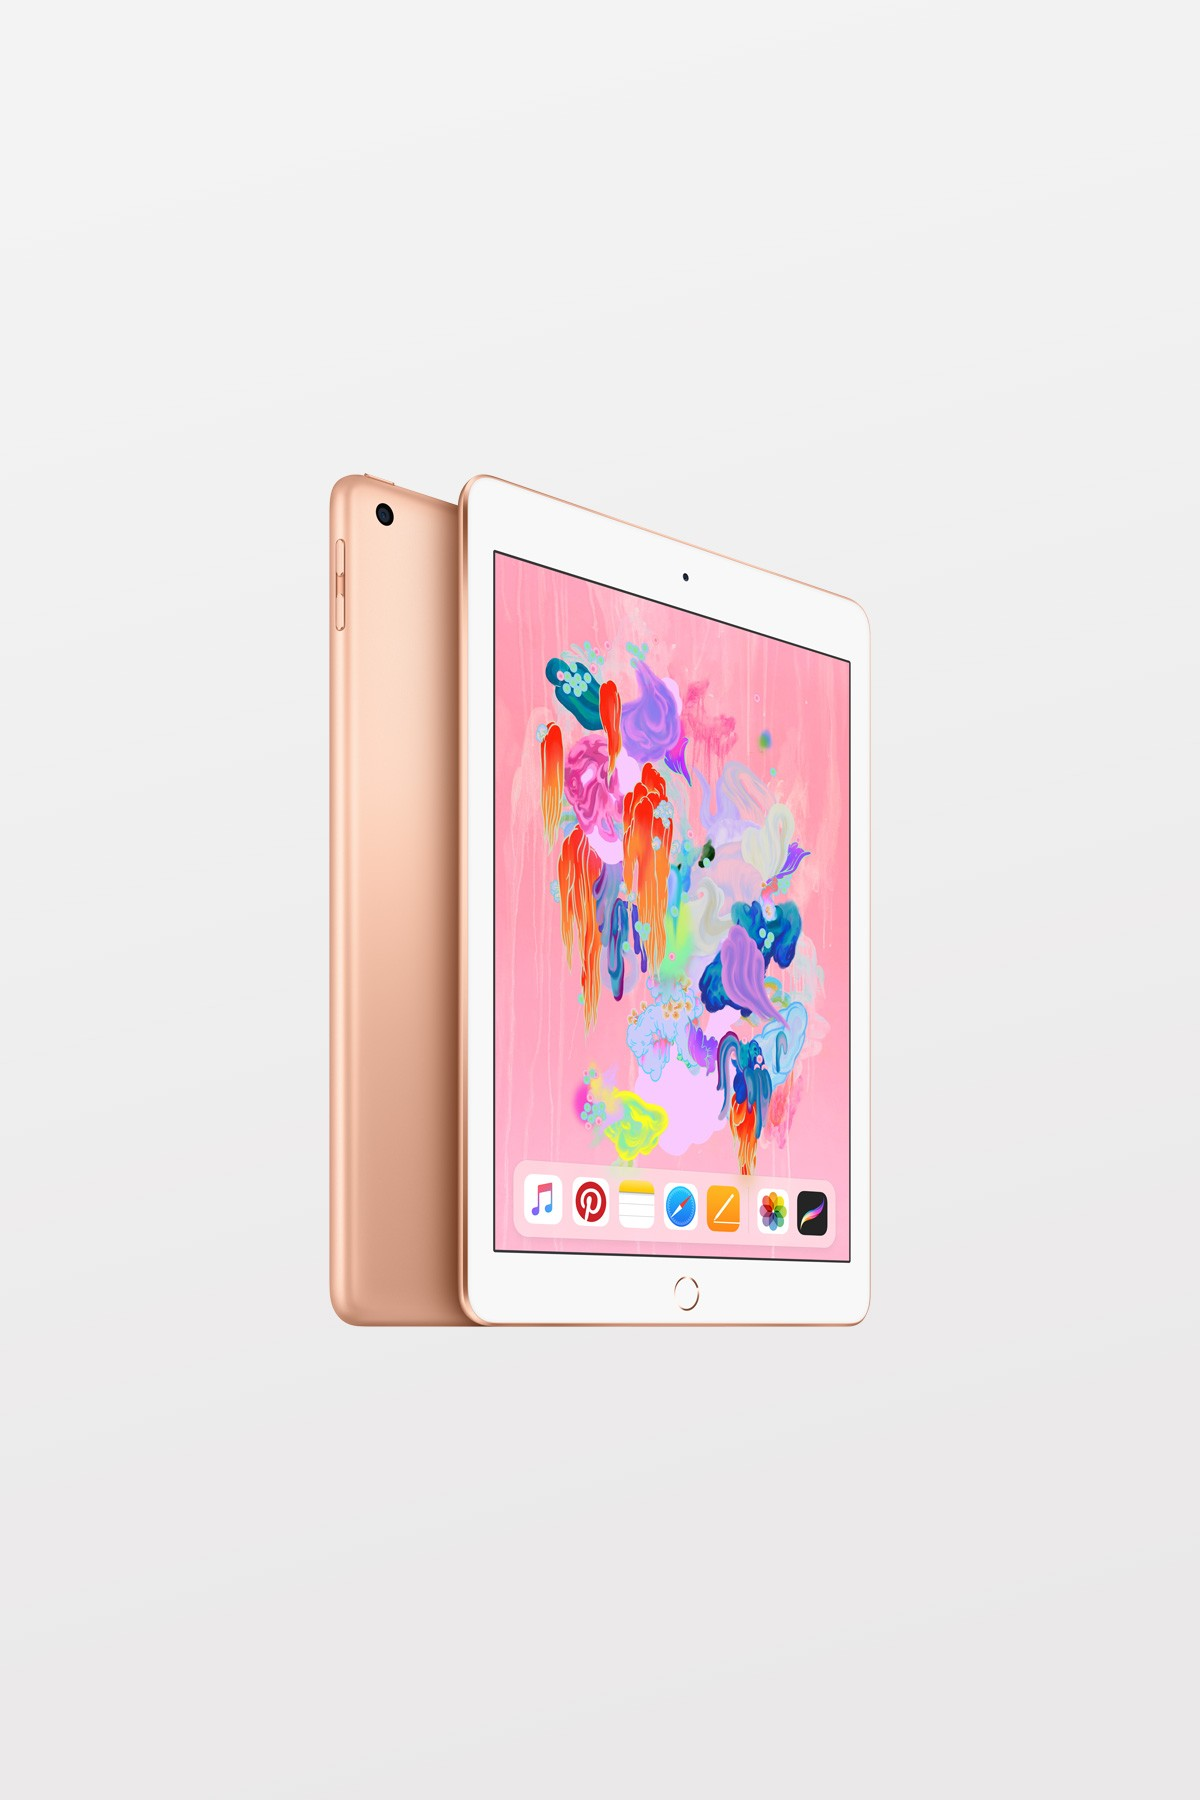 Apple iPad Wi-Fi + Cellular 32GB (6th-gen) - Gold - Supports Apple Pencil